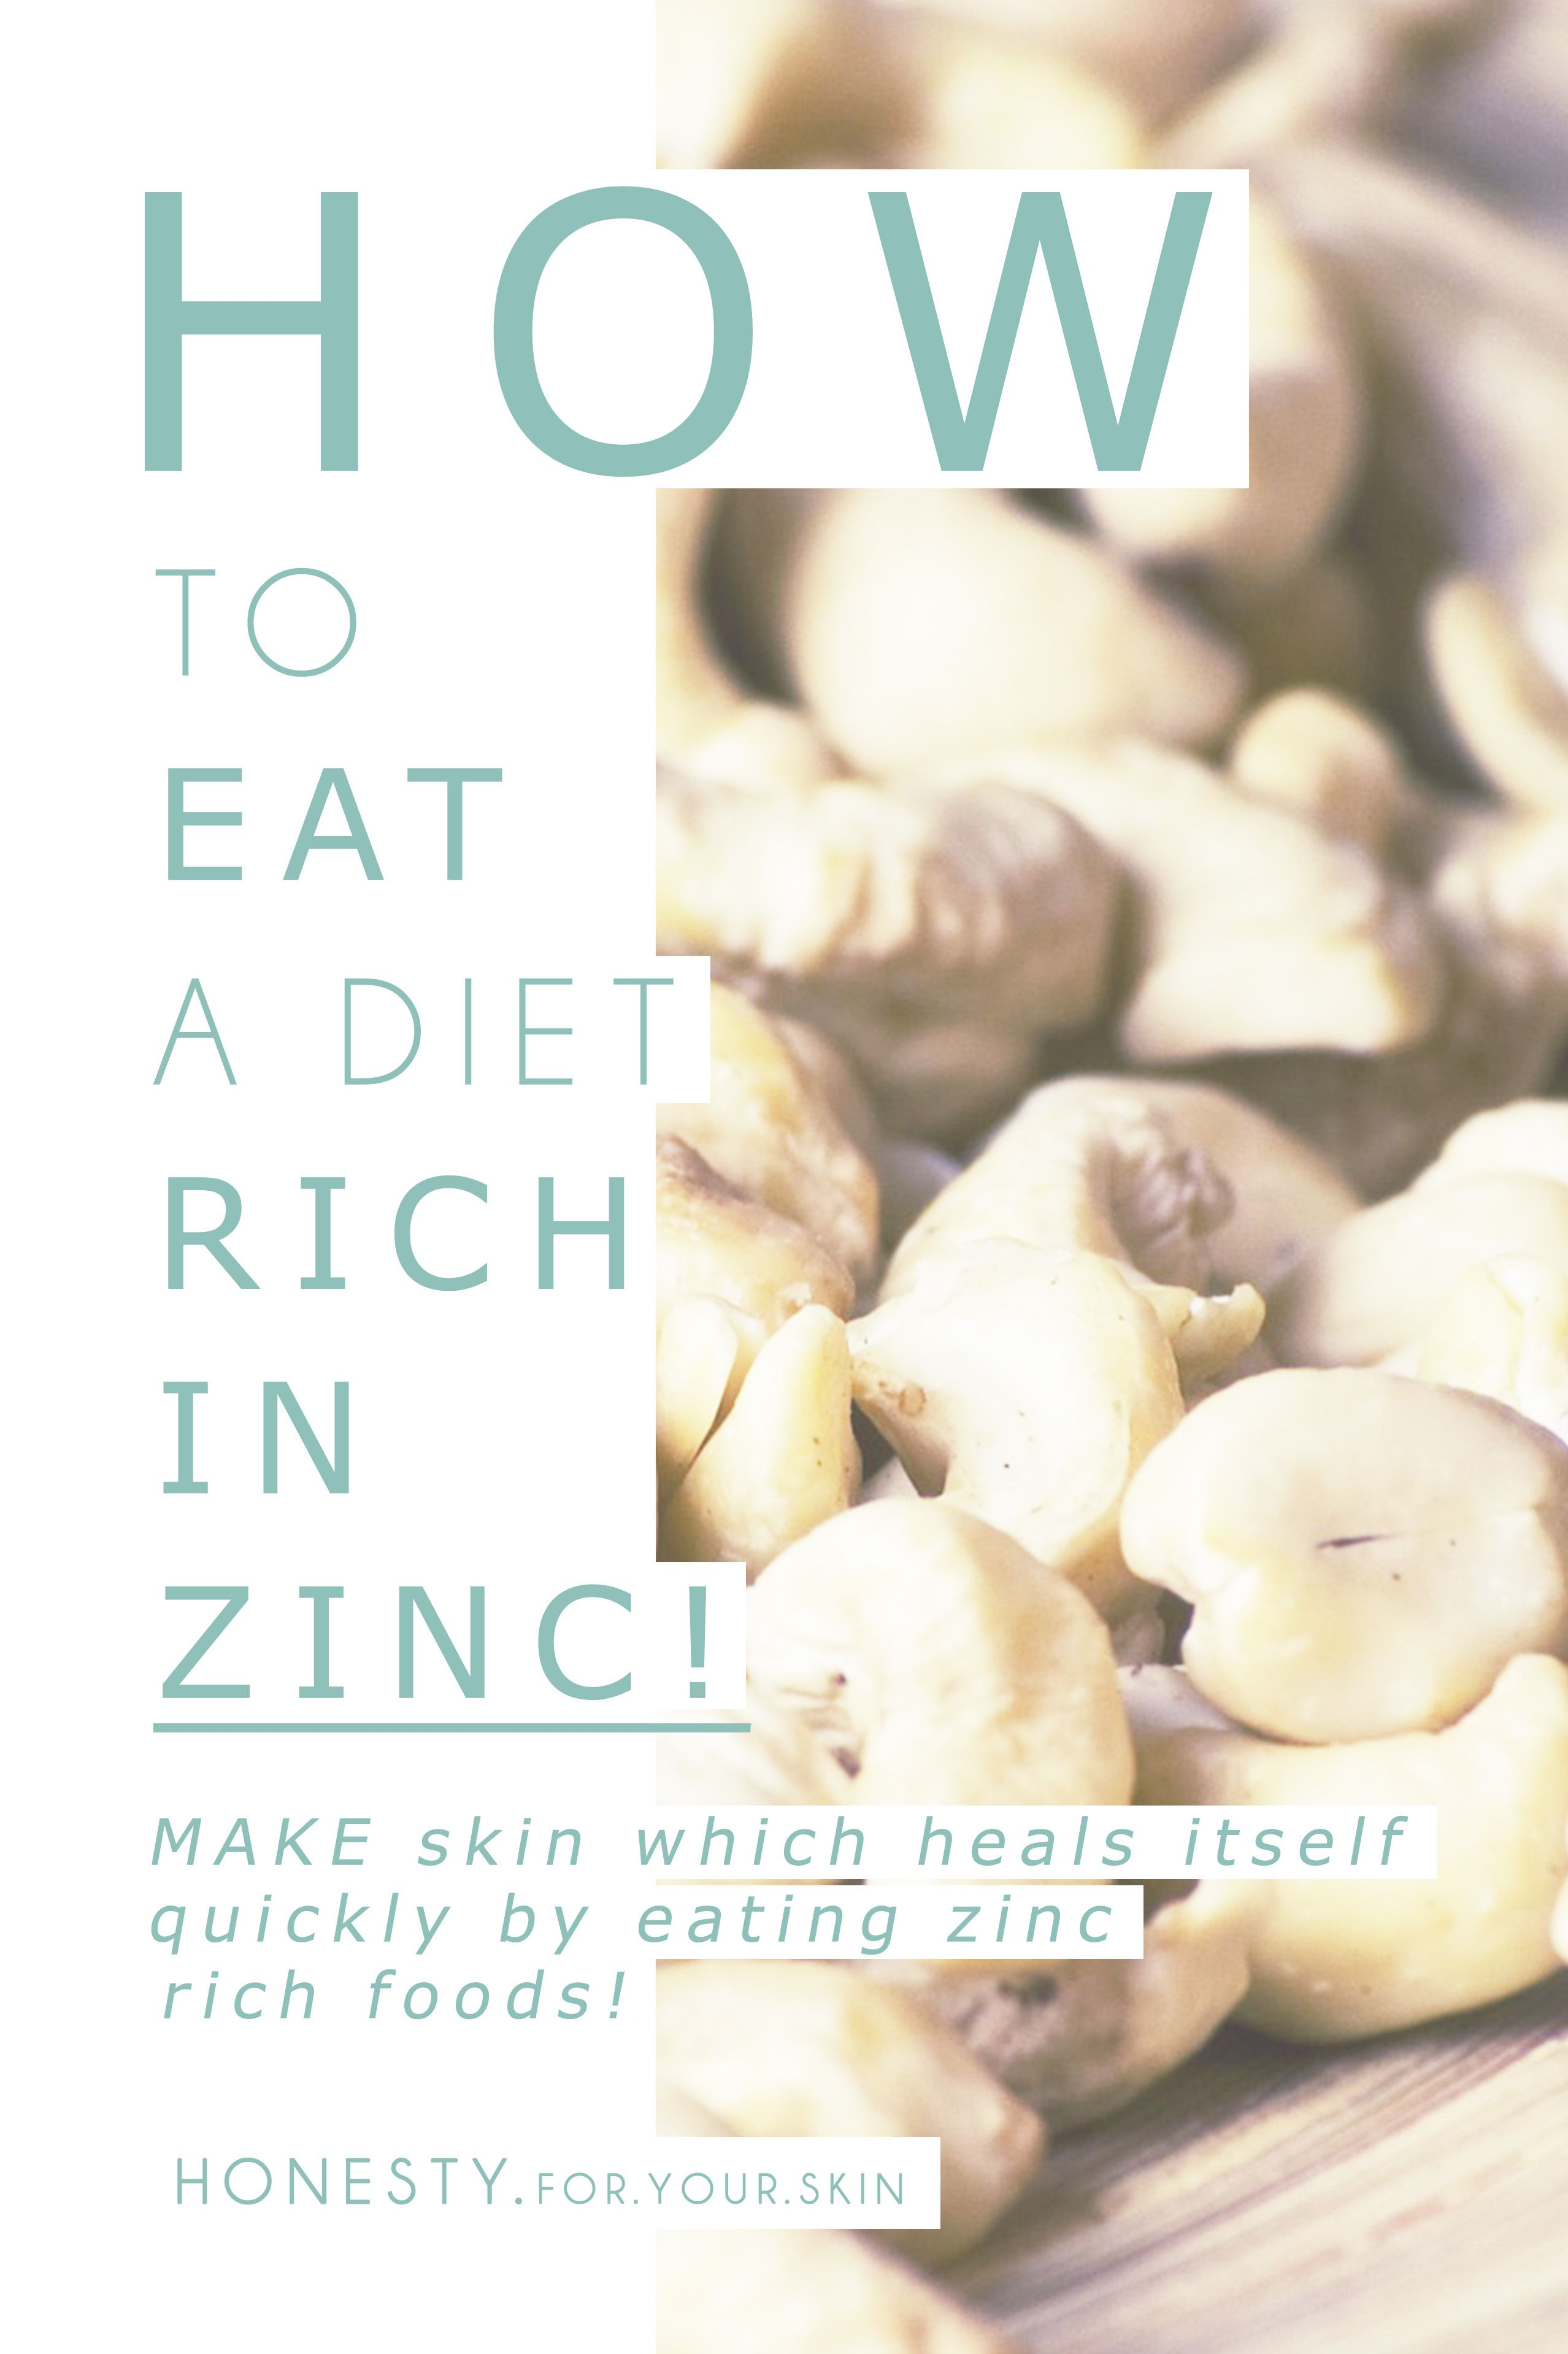 Zinc in Skincare Why You Need Zinc and What it Does